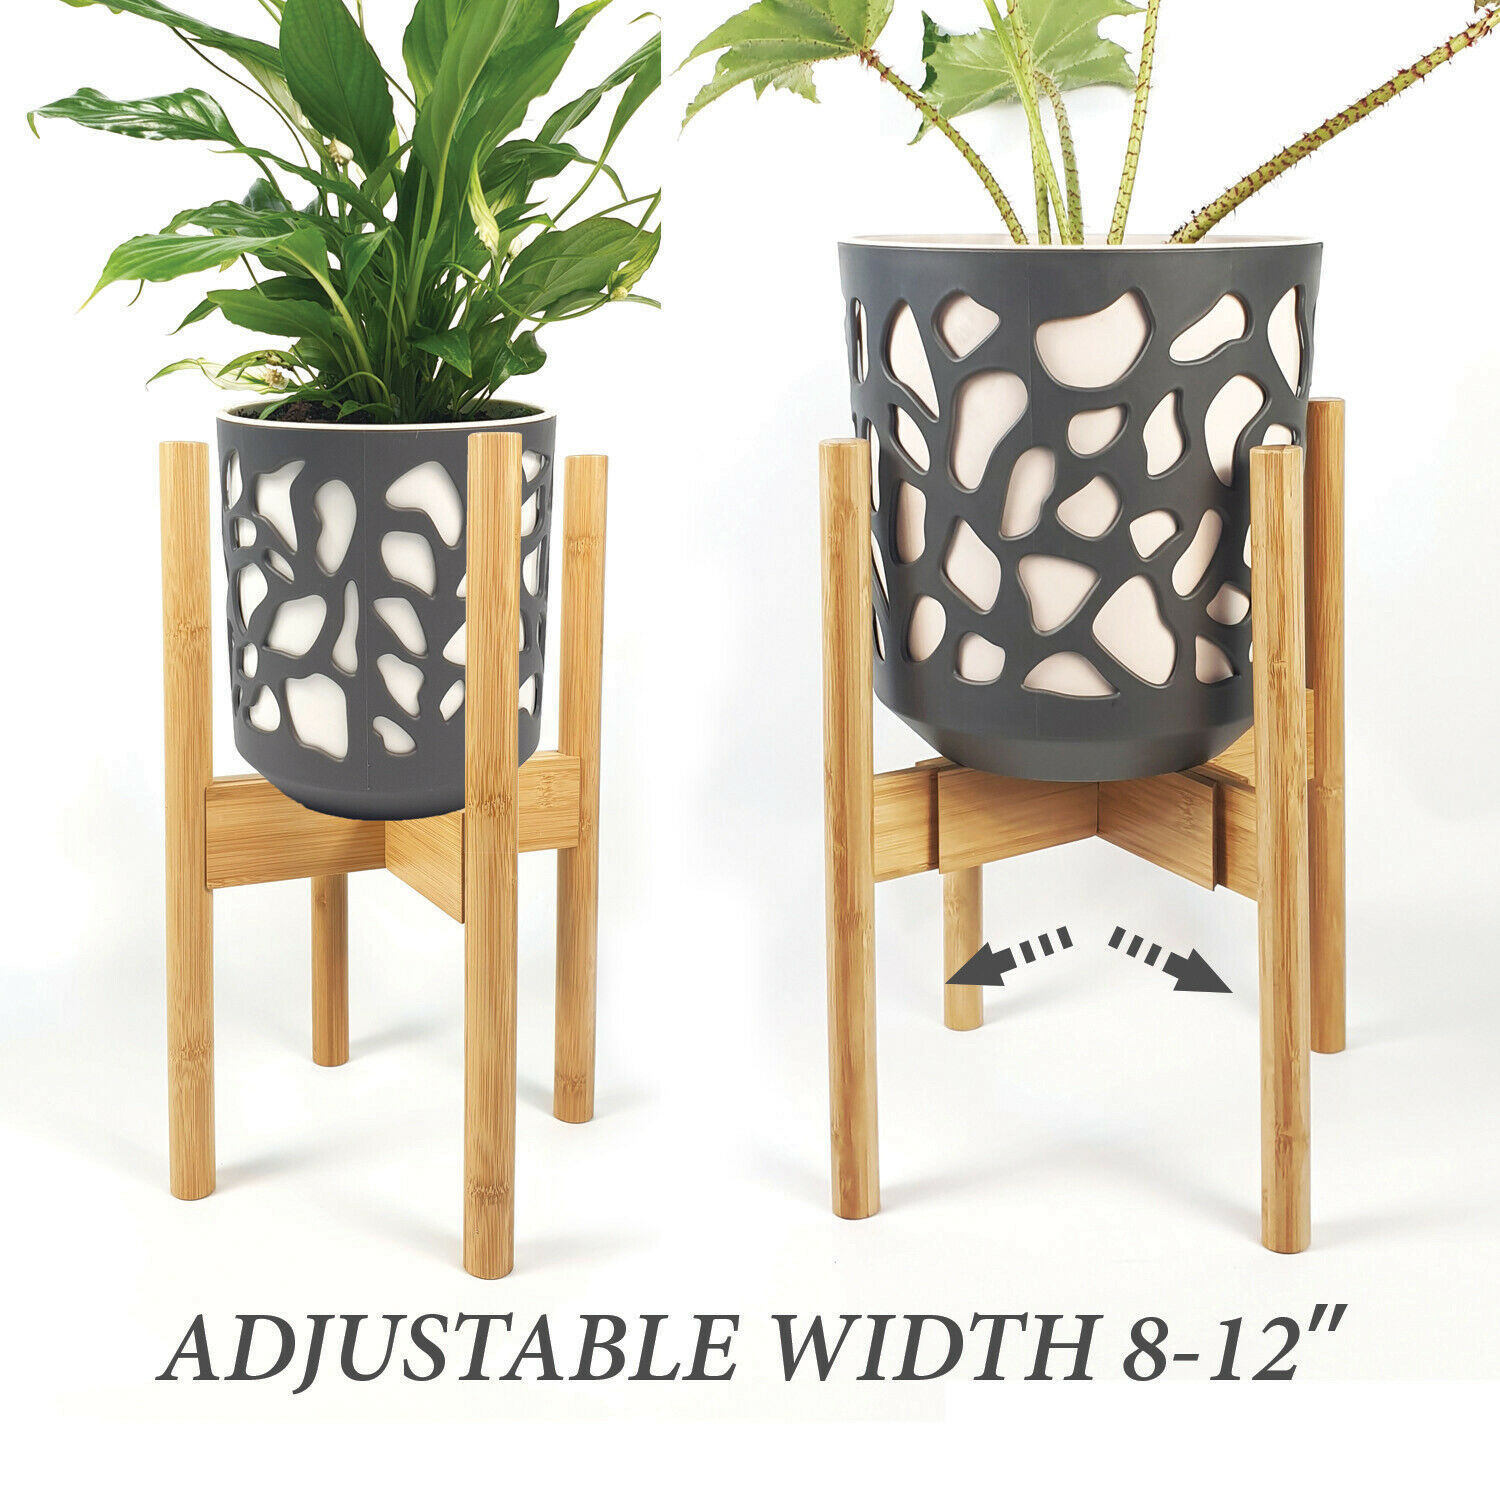 8 to 12 inches Black JENHOME Adjustable Plant Stand Mid Century Plant Stands for Indoor Plants Tall Metal Plant Stand Outdoor Pot /& Plant Not Included Fit 8 9 10 11 12 inch Pots